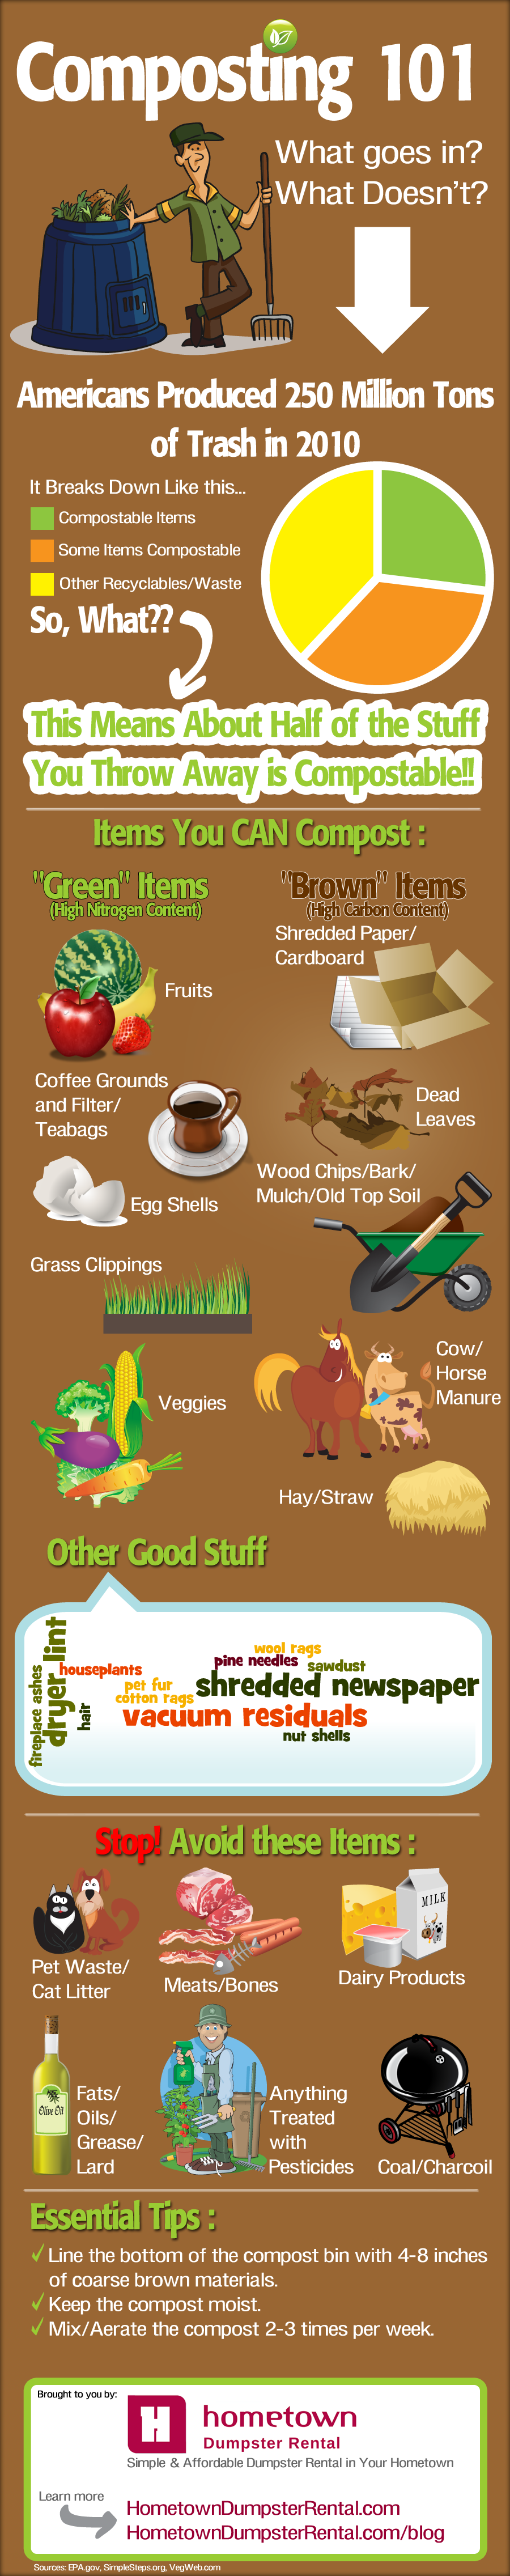 Composting Guidelines